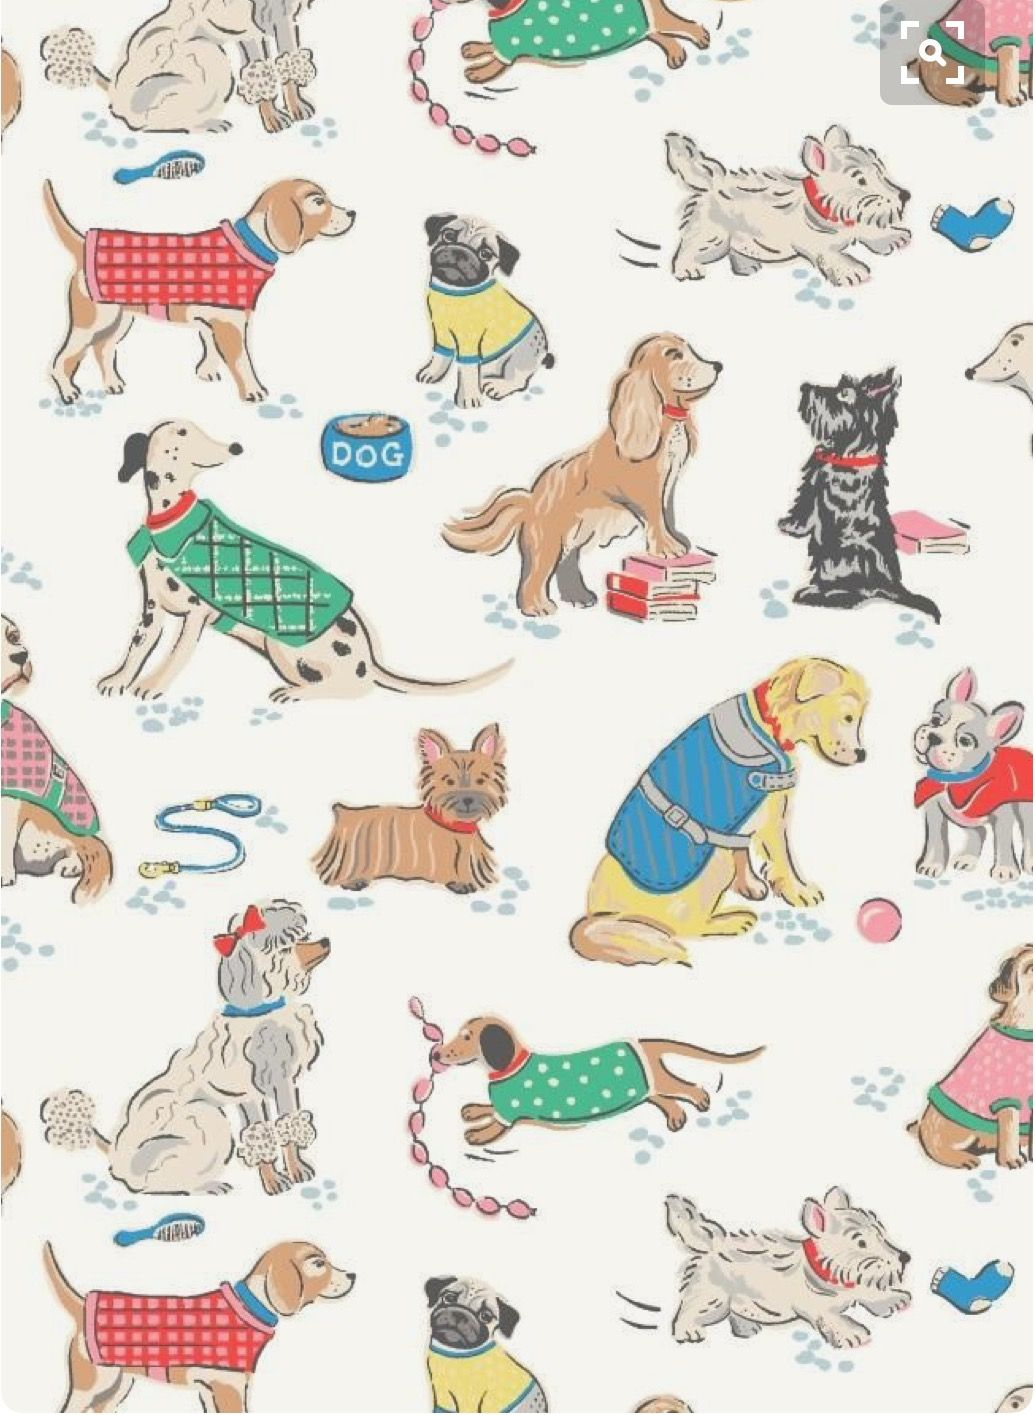 Dog wallpaper by Bridget on Puppy Love Cute wallpapers